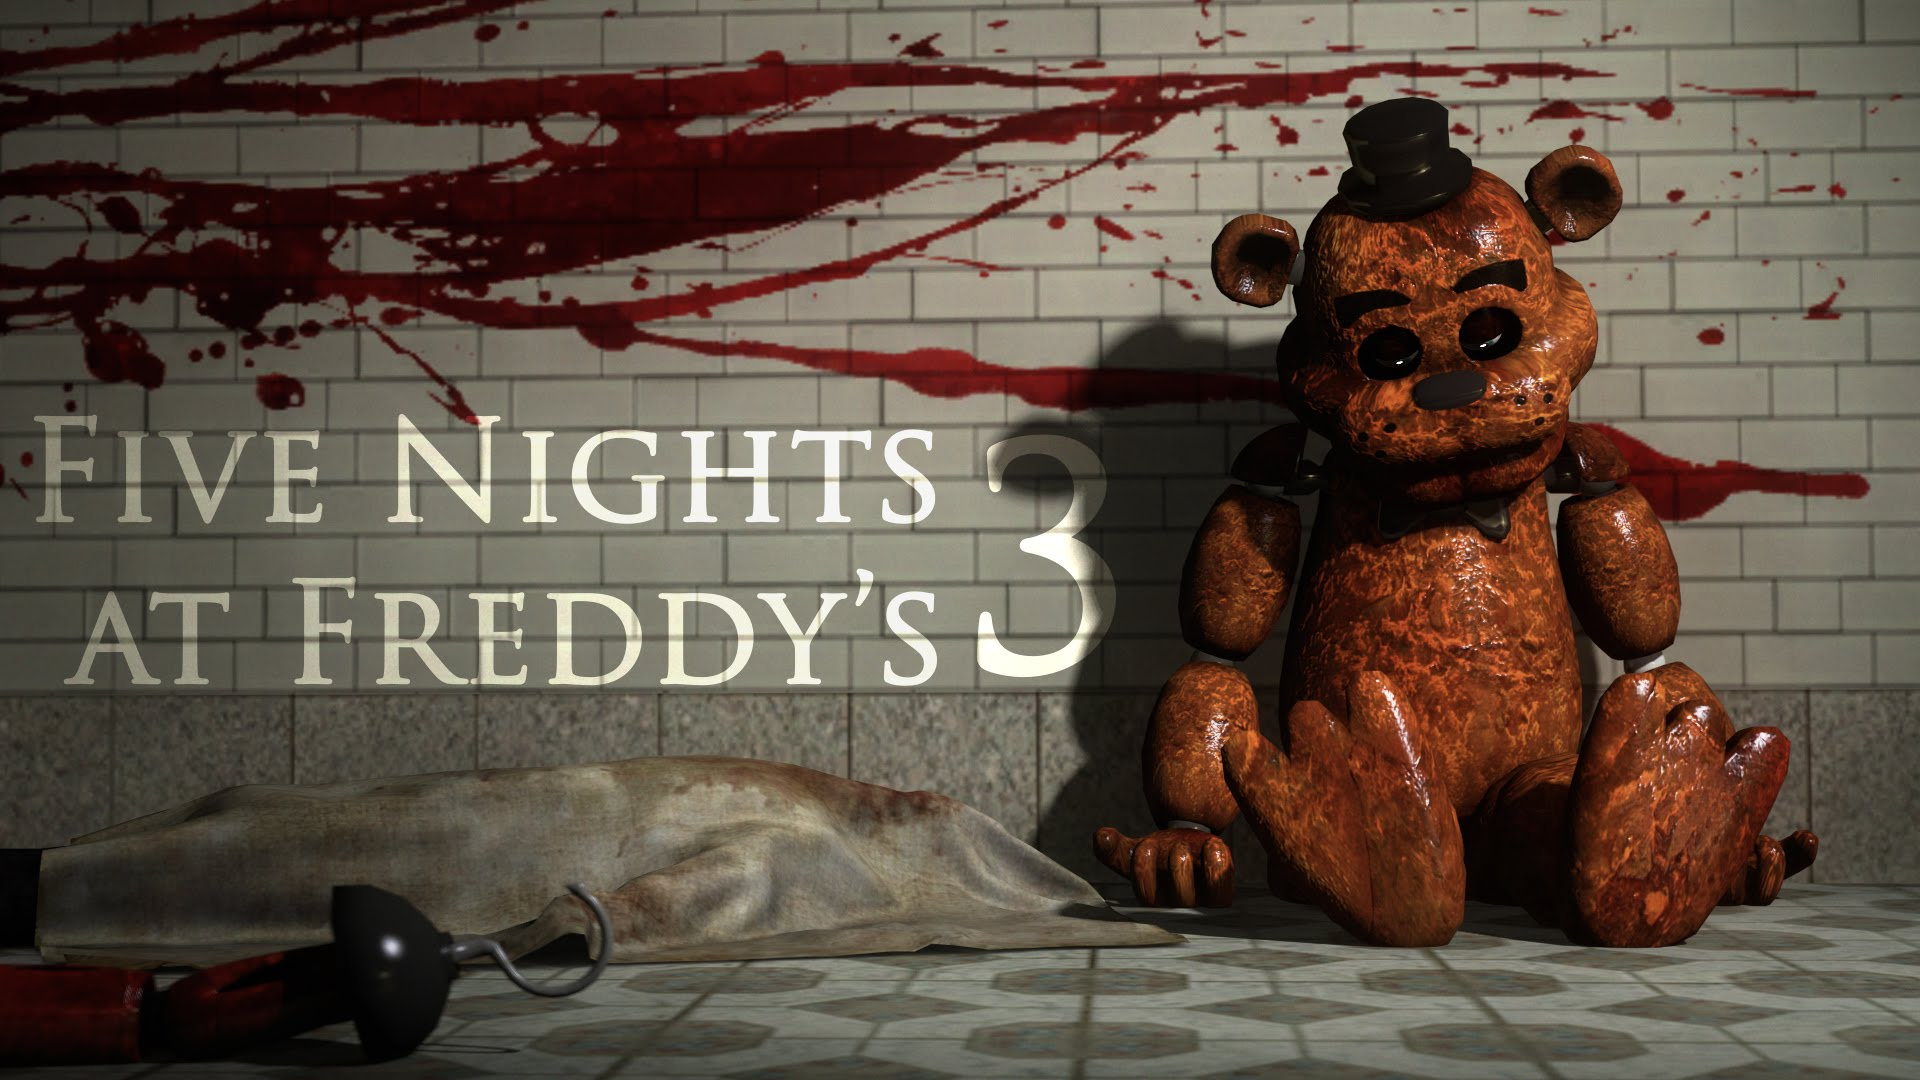 Five Nights At Freddy's 3 Review